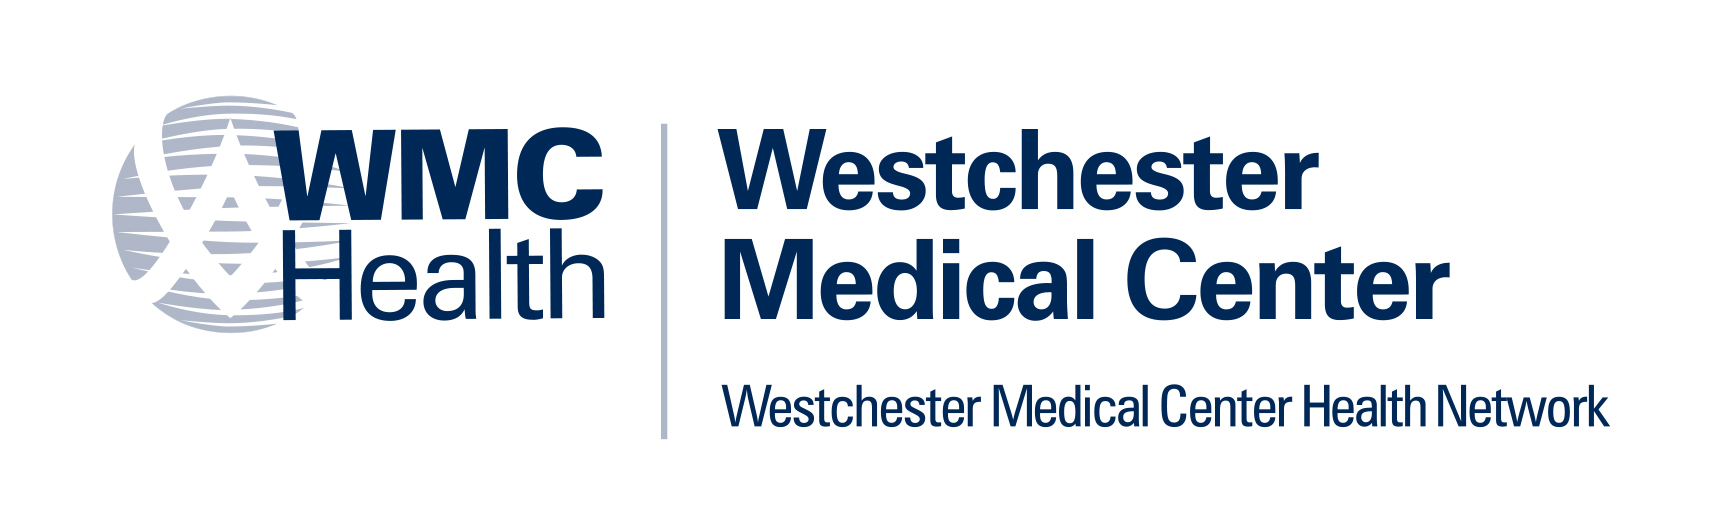 Westchester Medical Center Network Logo